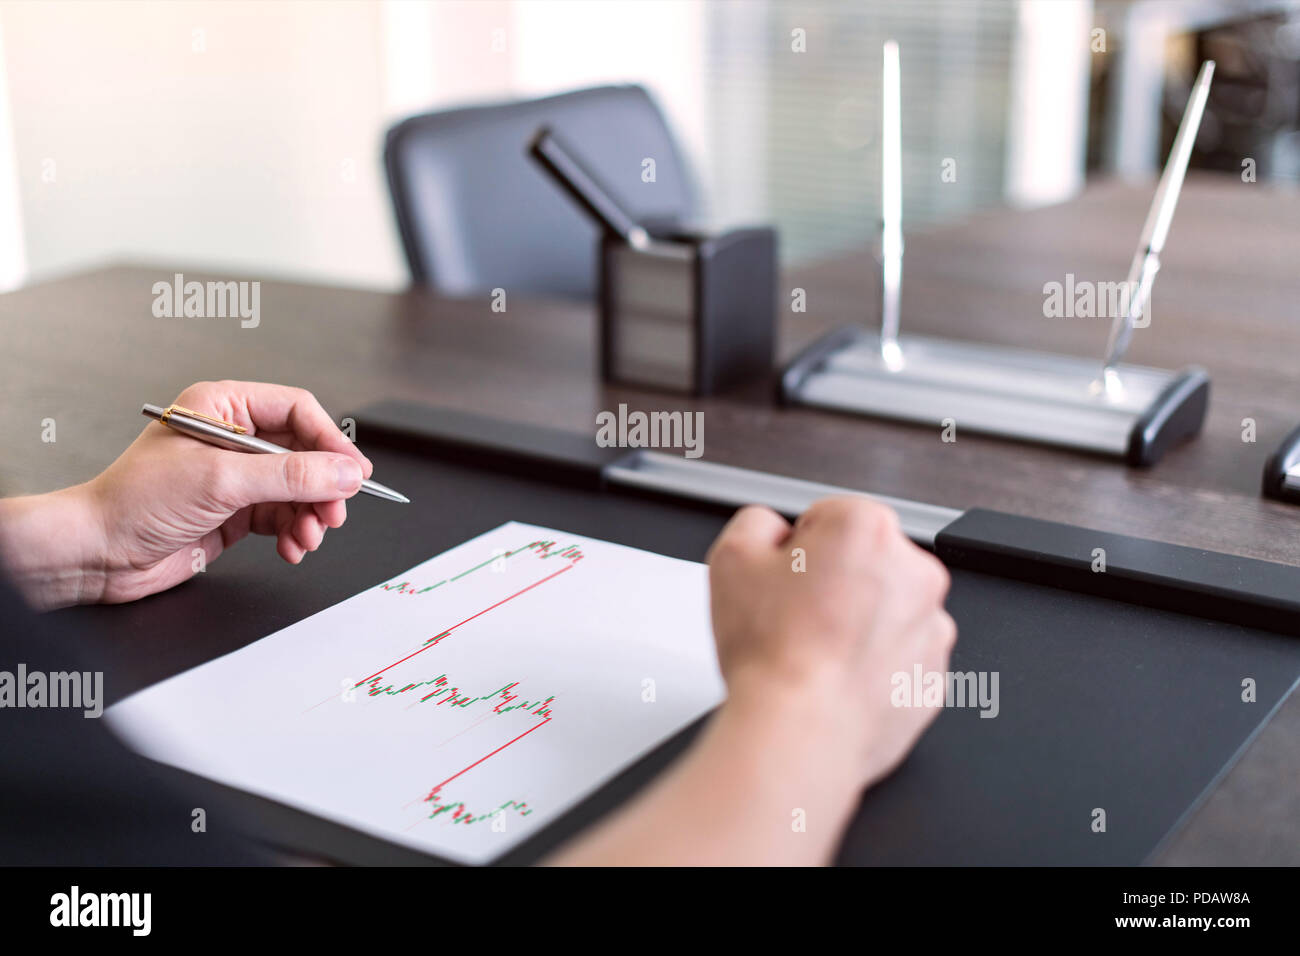 Man sitting at table and holds pen in left hand. There are sheet of paper with a trading chart on the table. Concept photo. - Stock Image